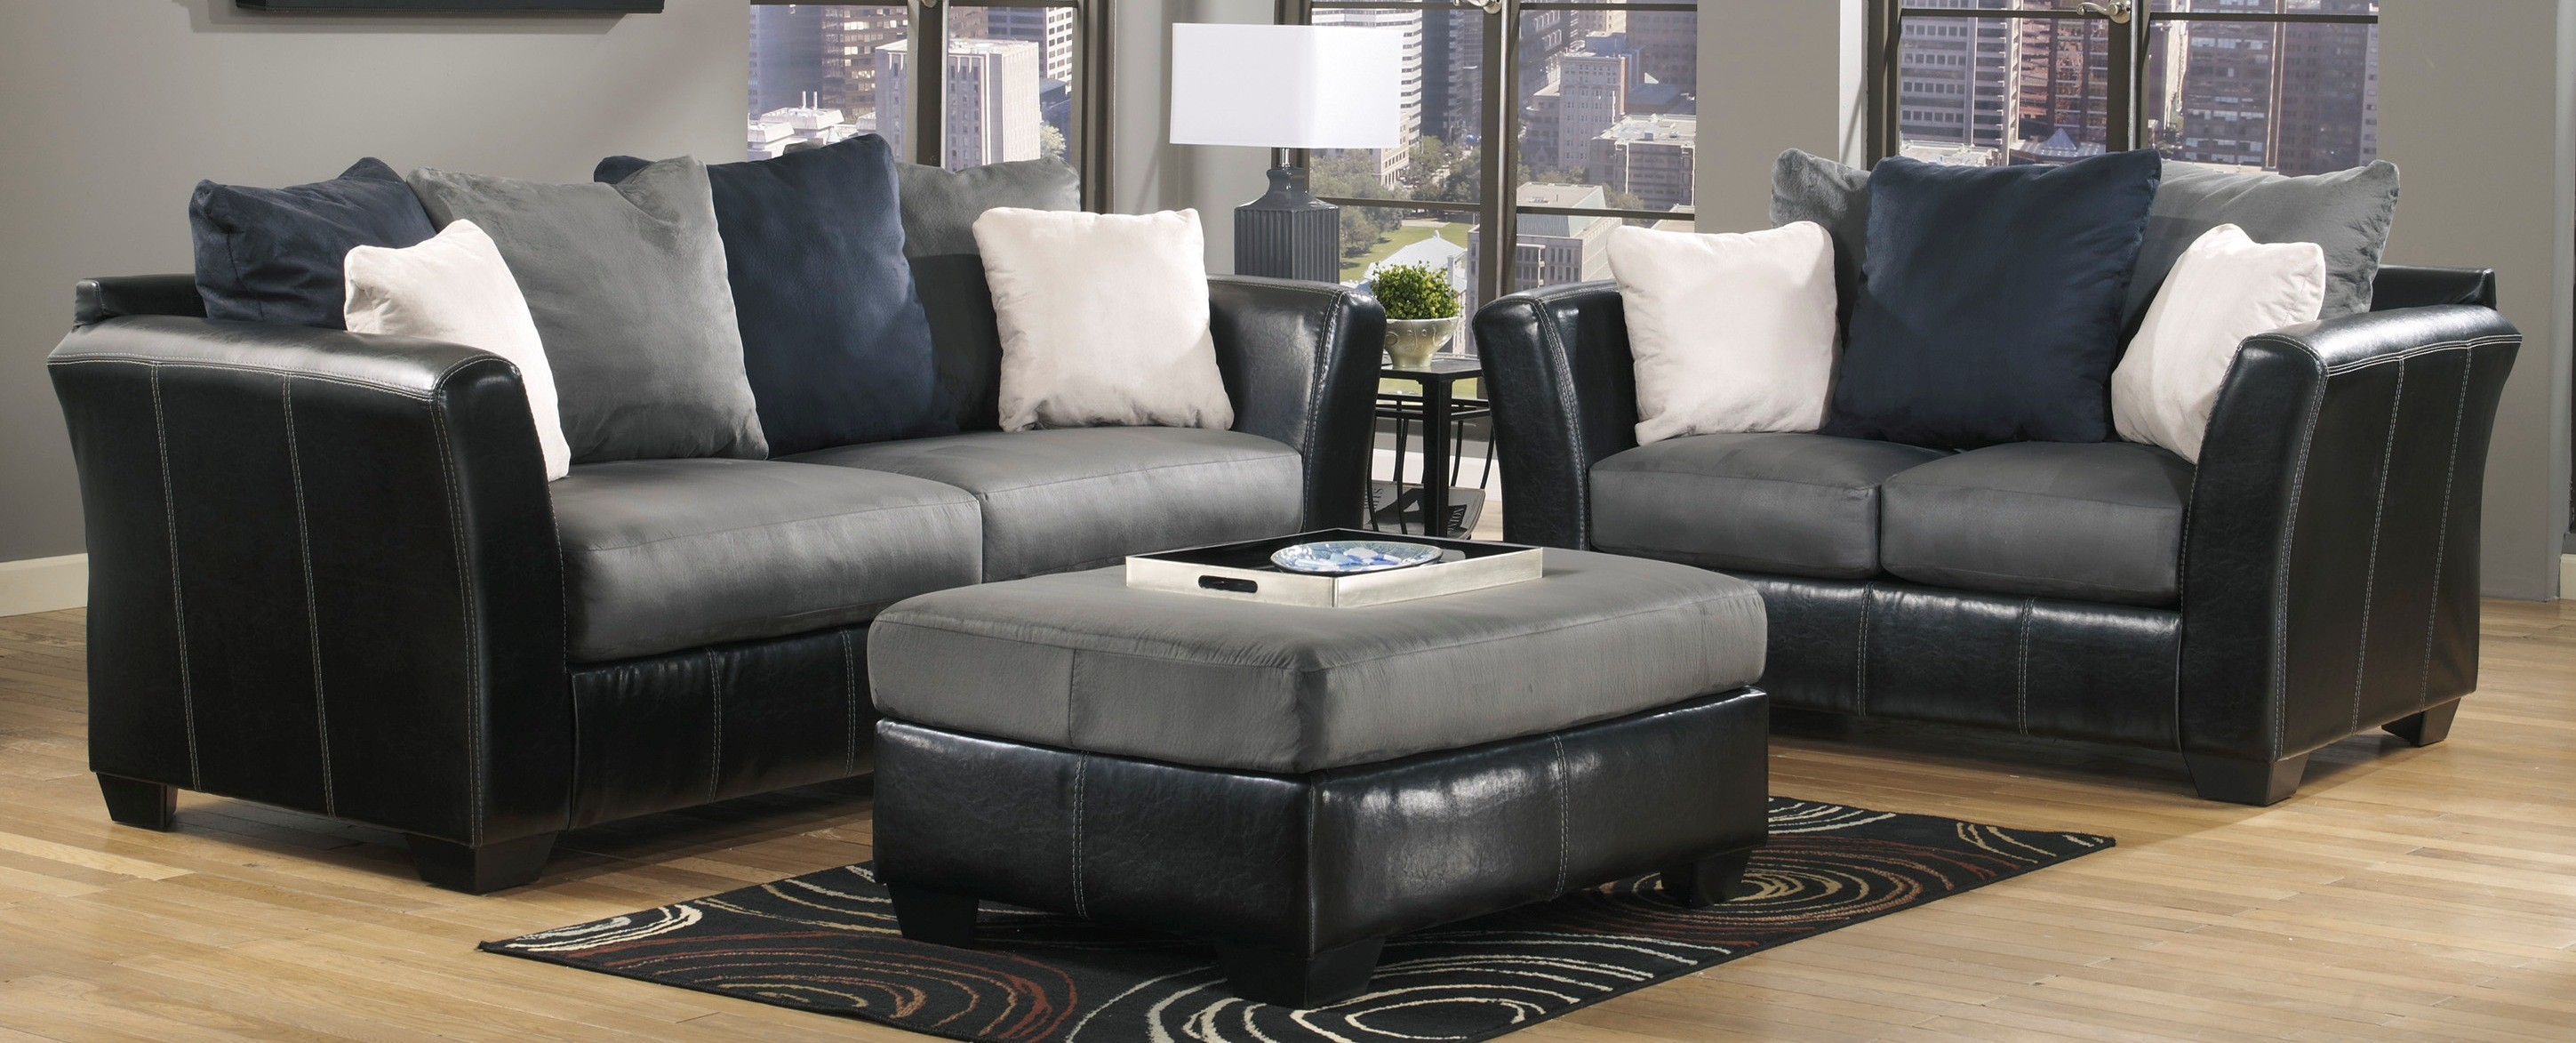 Springfield Furniture Direct Quality Furniture Discount Prices